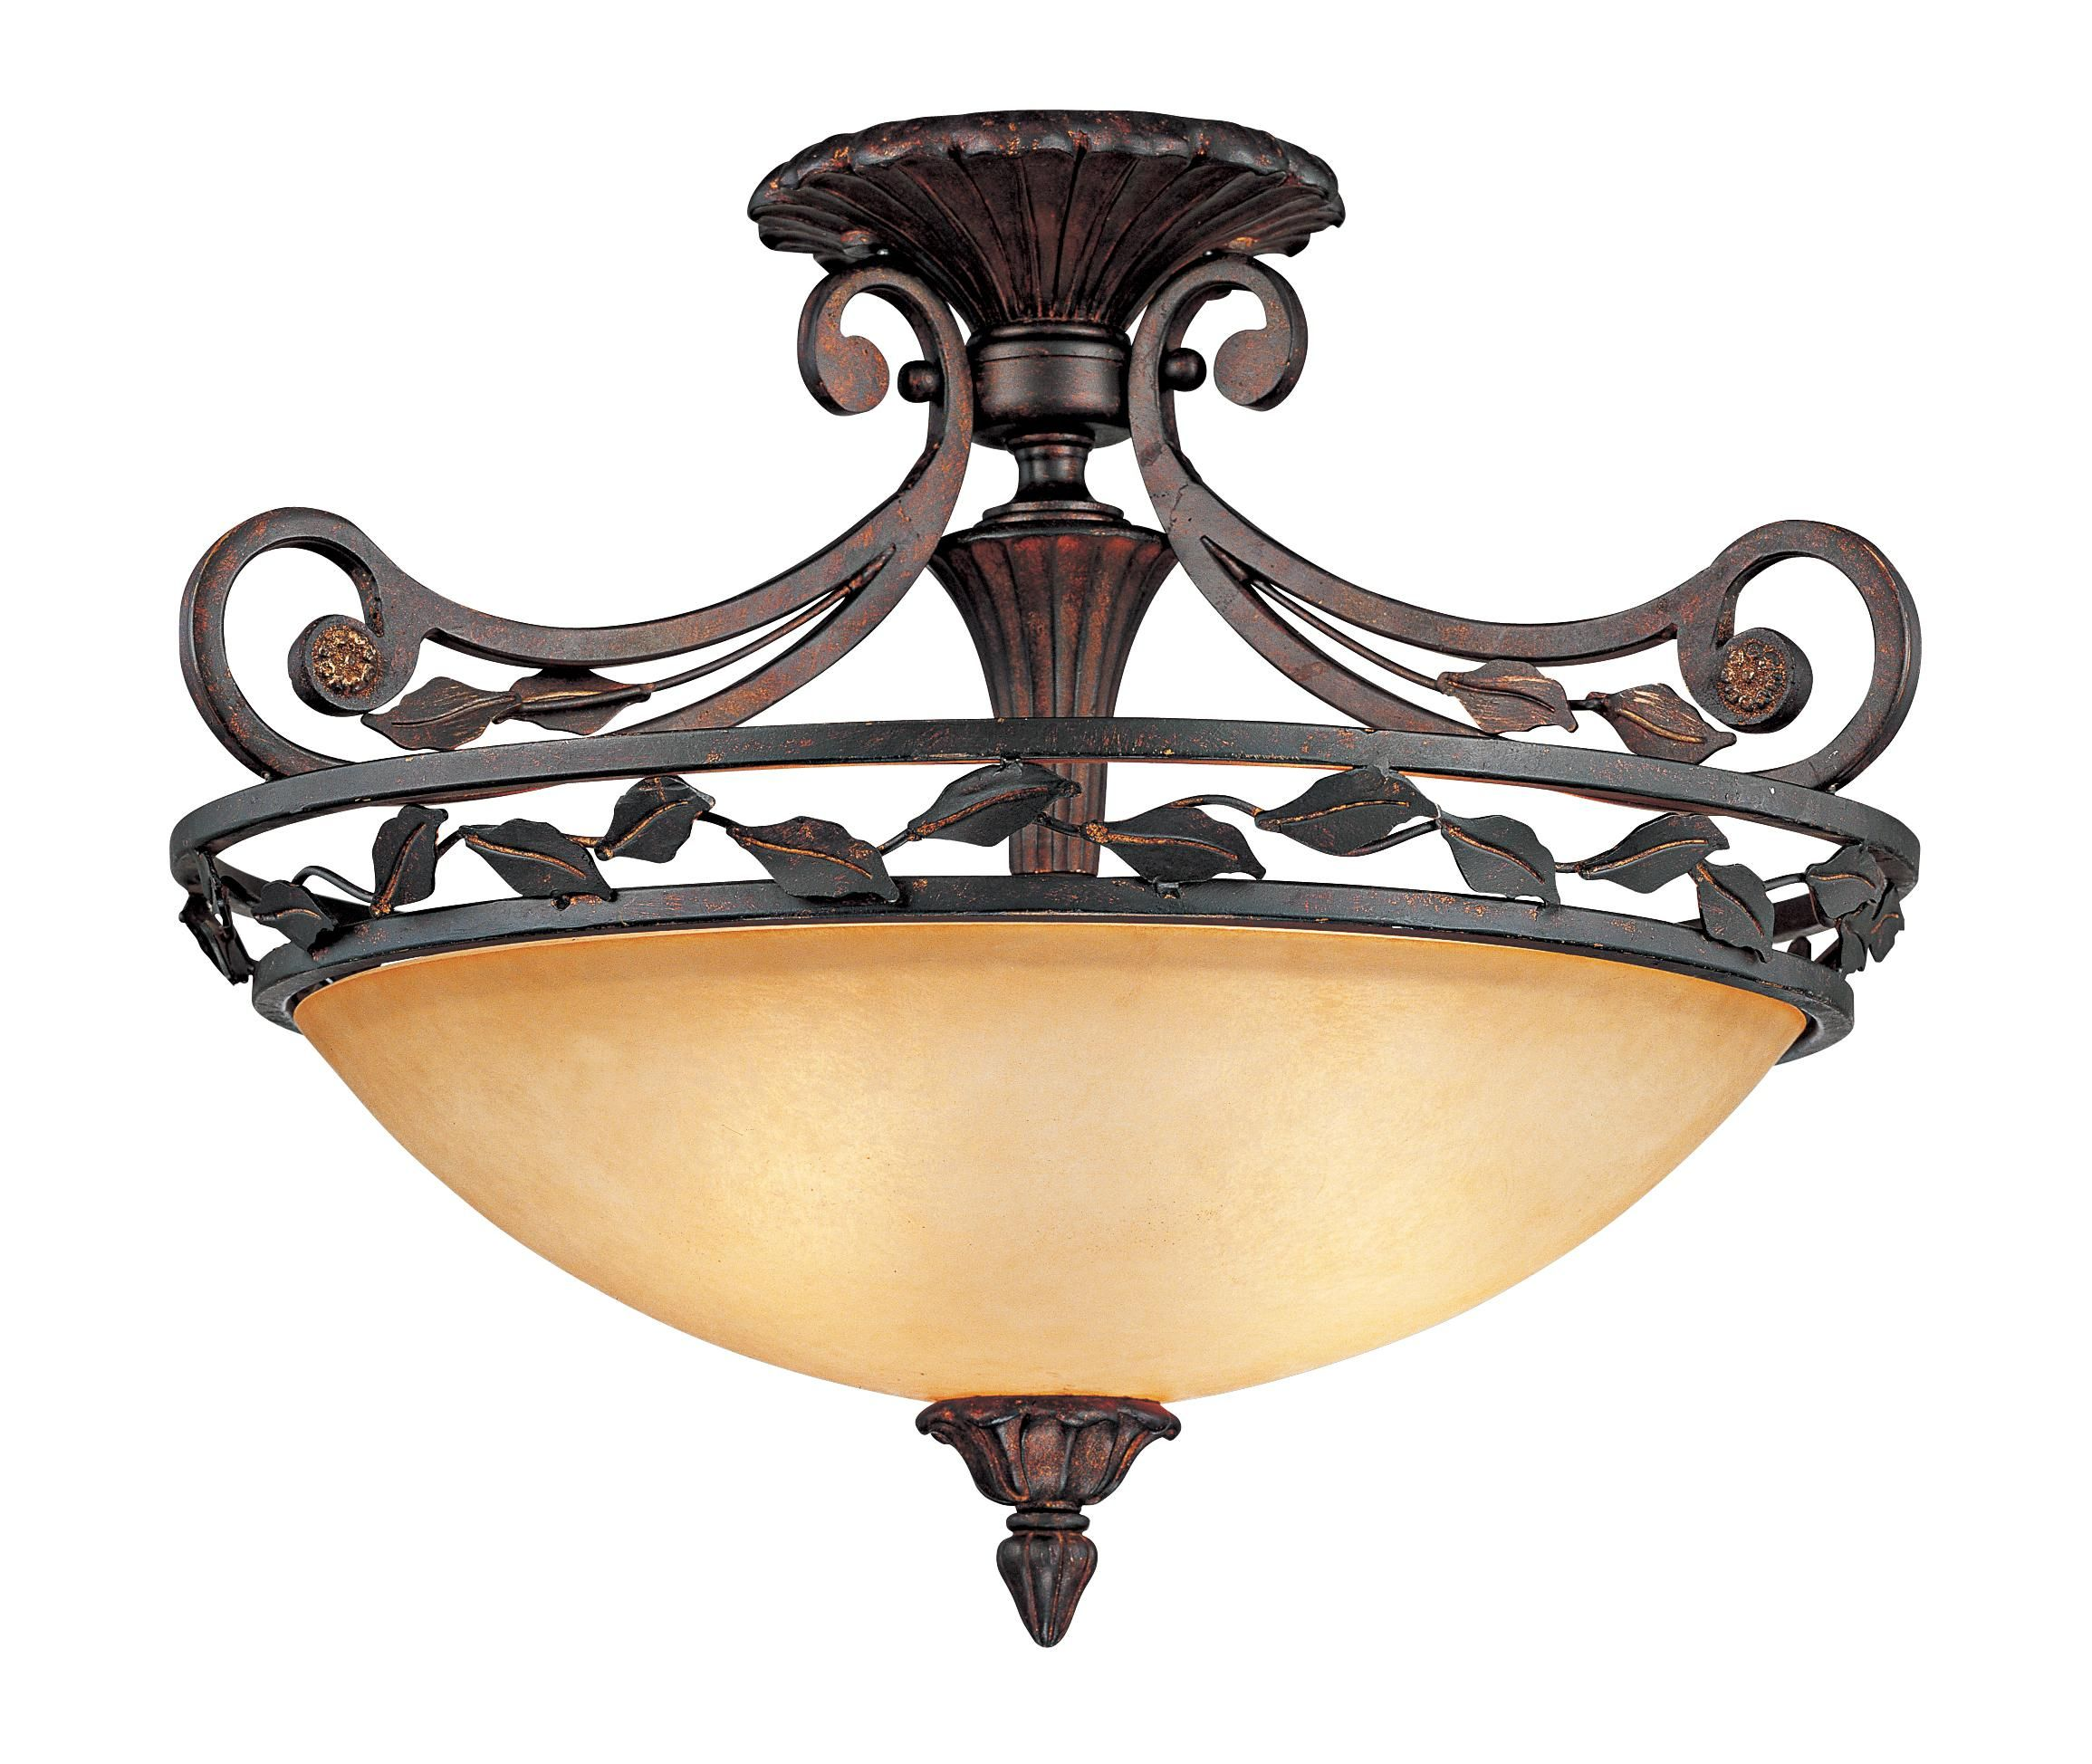 Scavo leaf and vine bronze 21 wide ceiling light fixture 25000 scavo leaf and vine bronze 21 wide ceiling light fixture 25000 good for 3 arubaitofo Choice Image